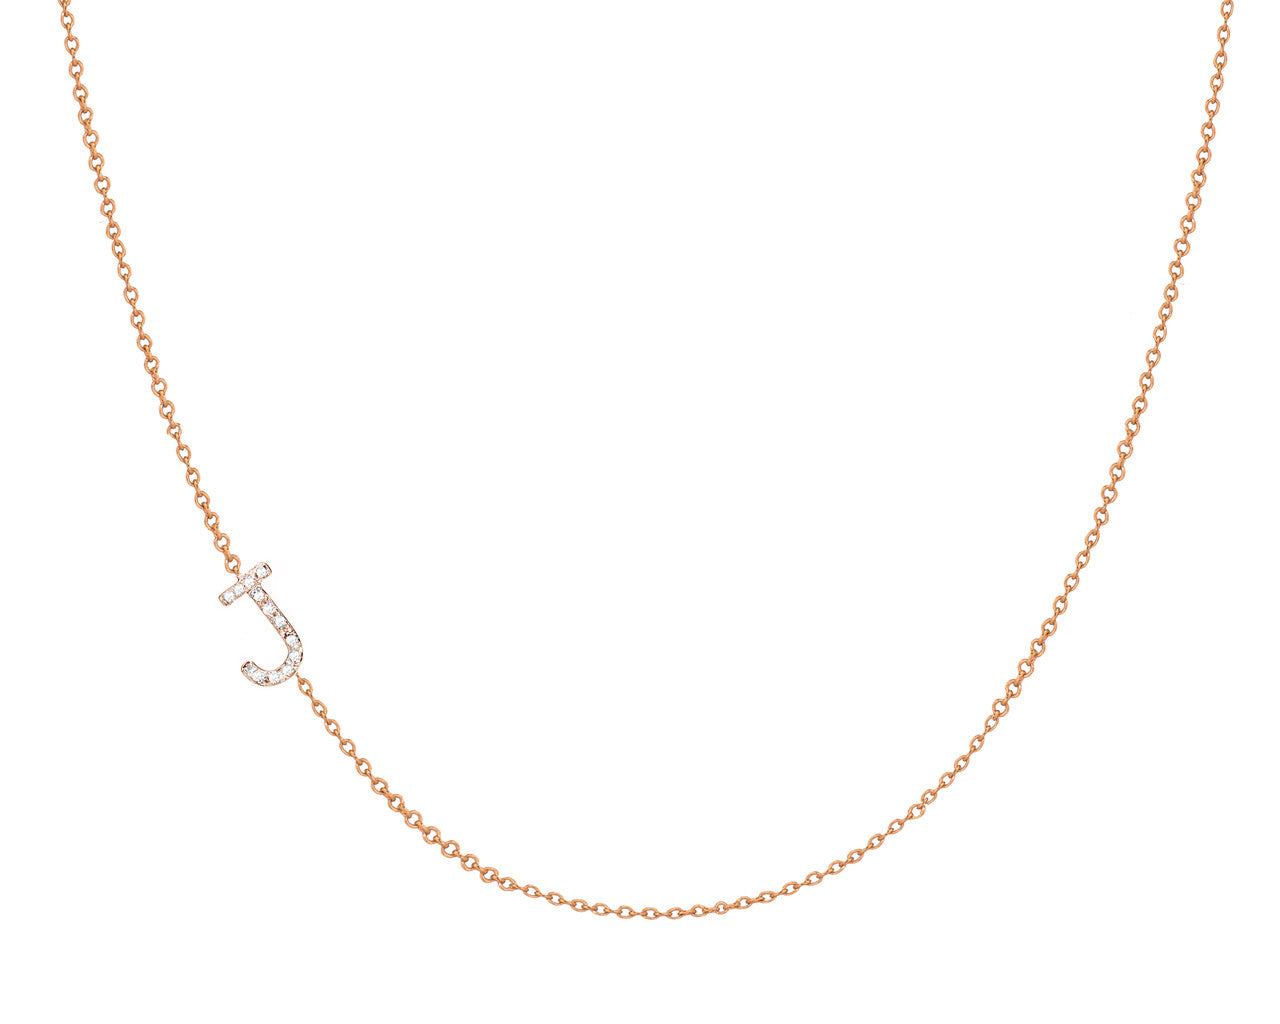 Diamond Initial Necklace - Asymmetrical